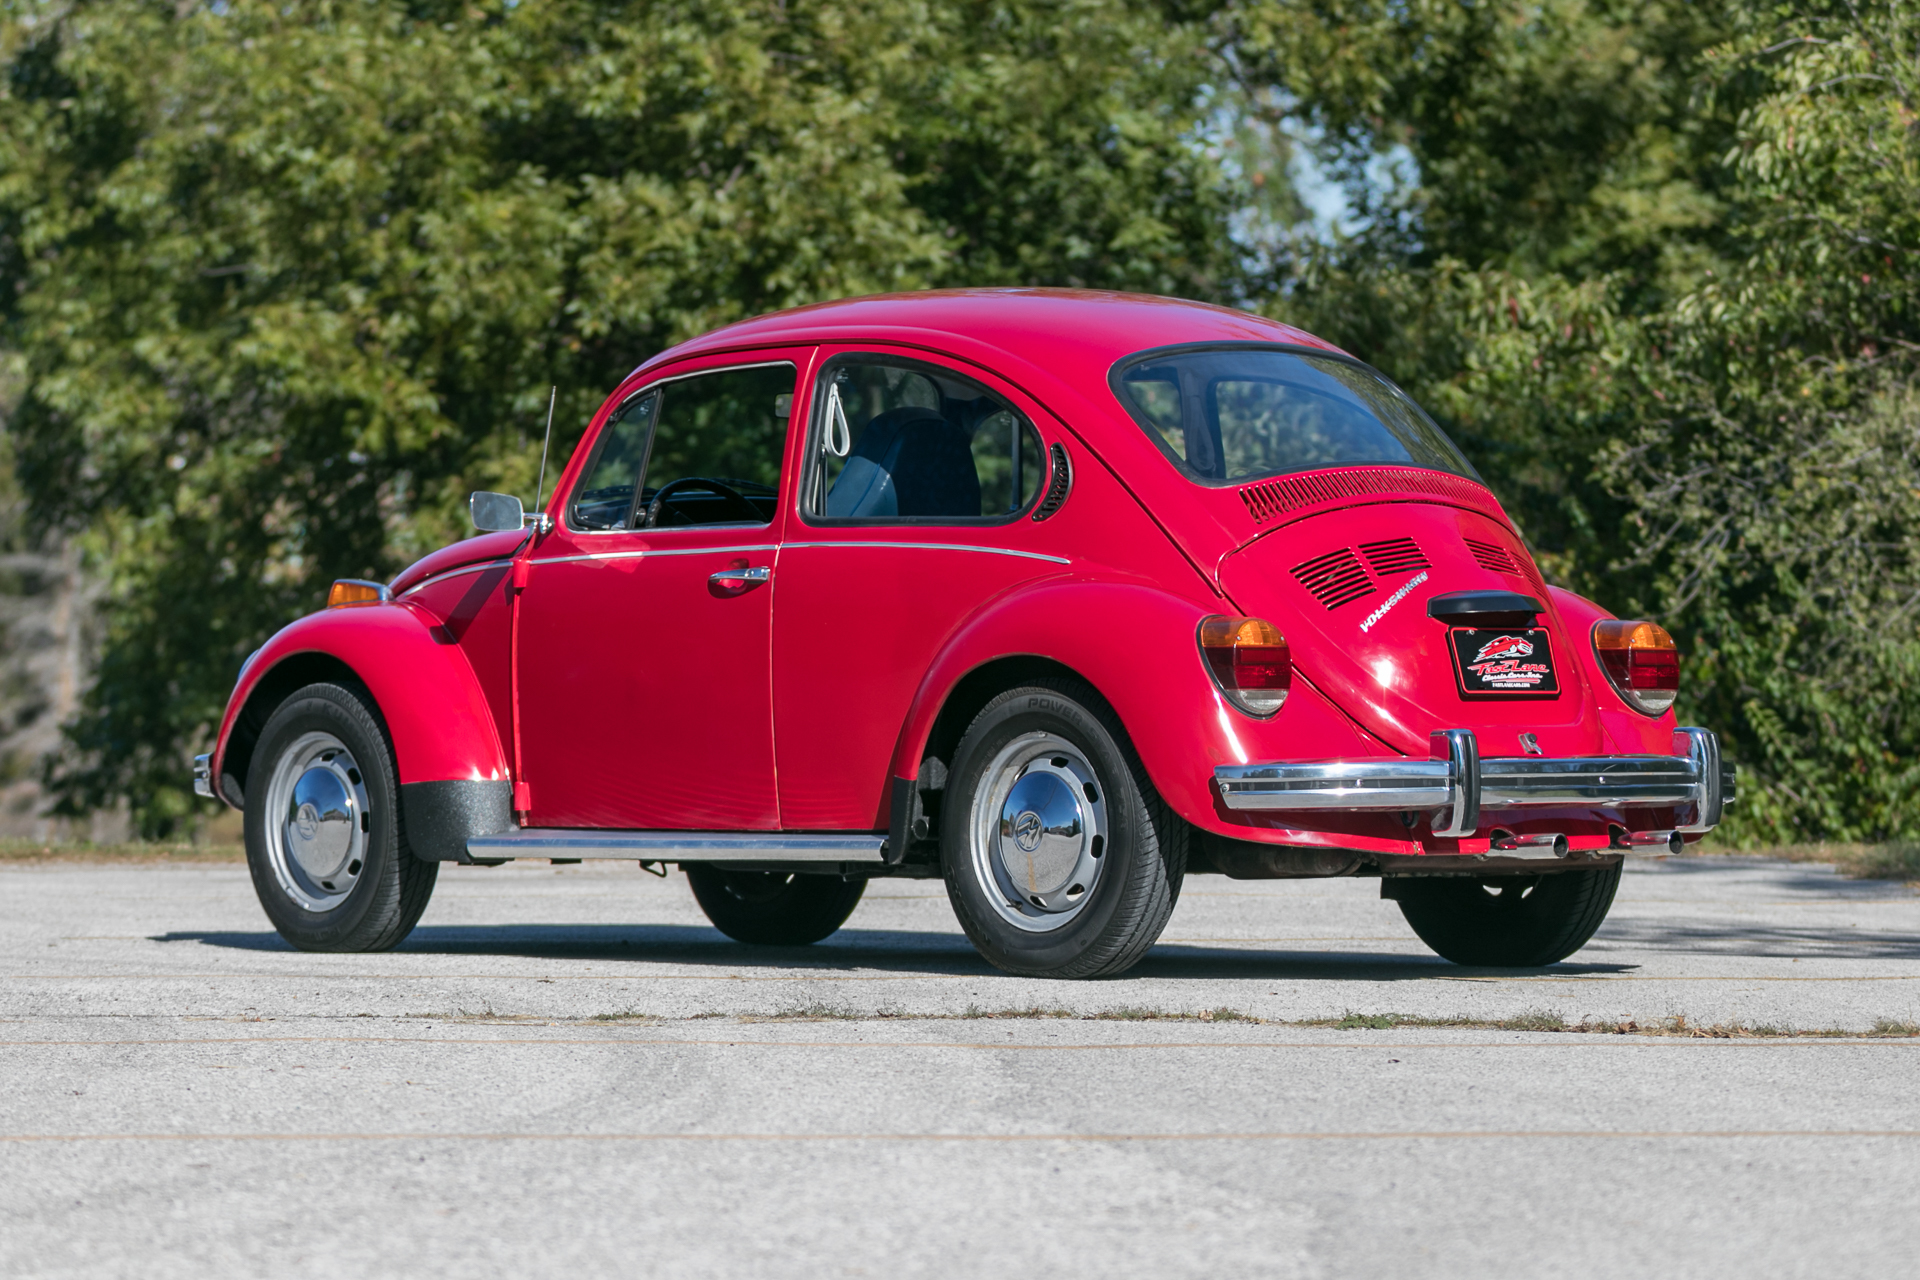 1973 Volkswagen Beetle Fast Lane Classic Cars